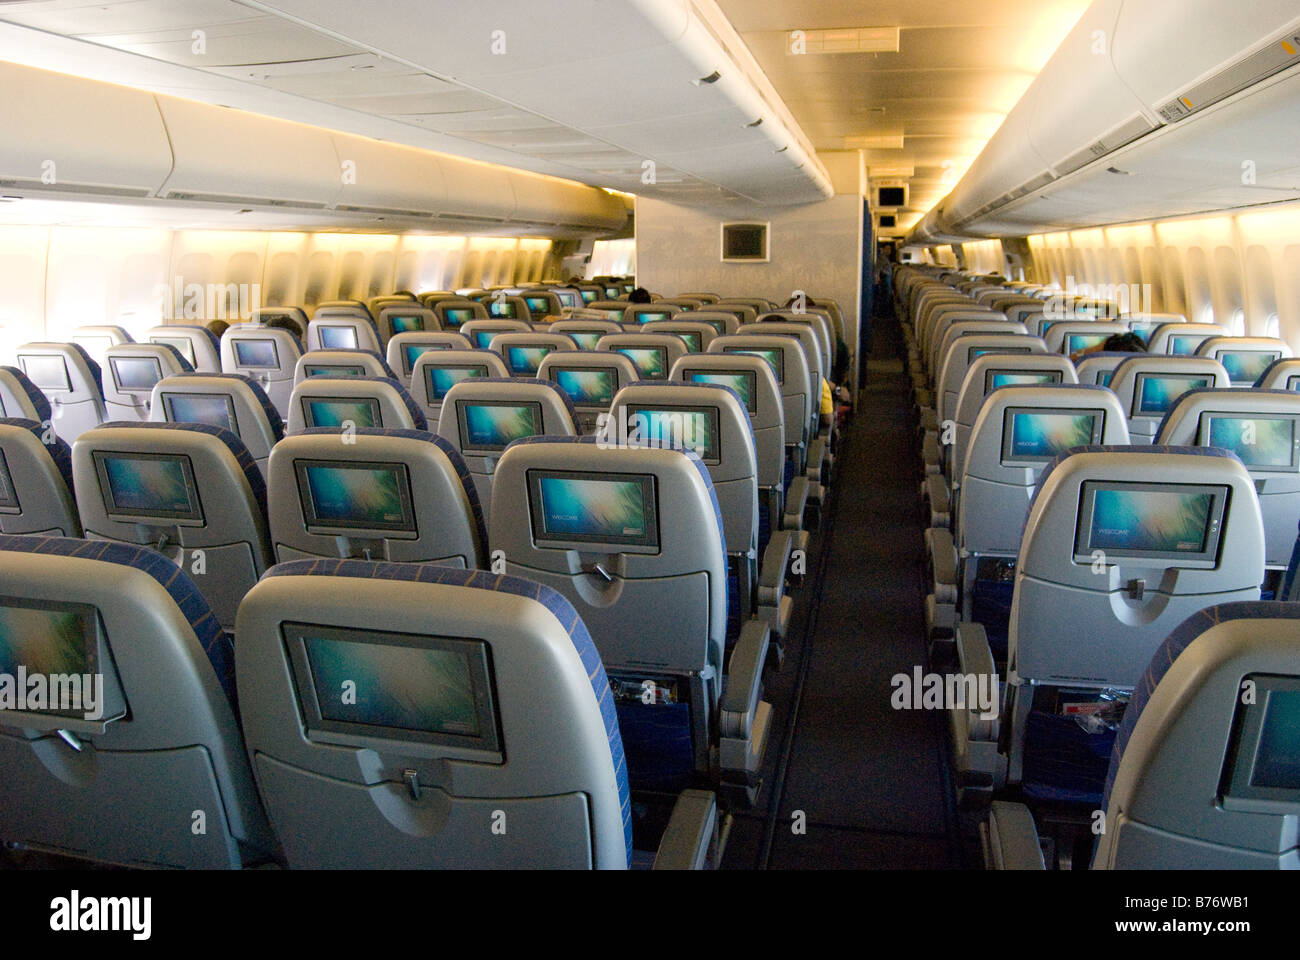 interior view of air philippines boeing 747 jumbo jet showing seats with entertainment screens stock